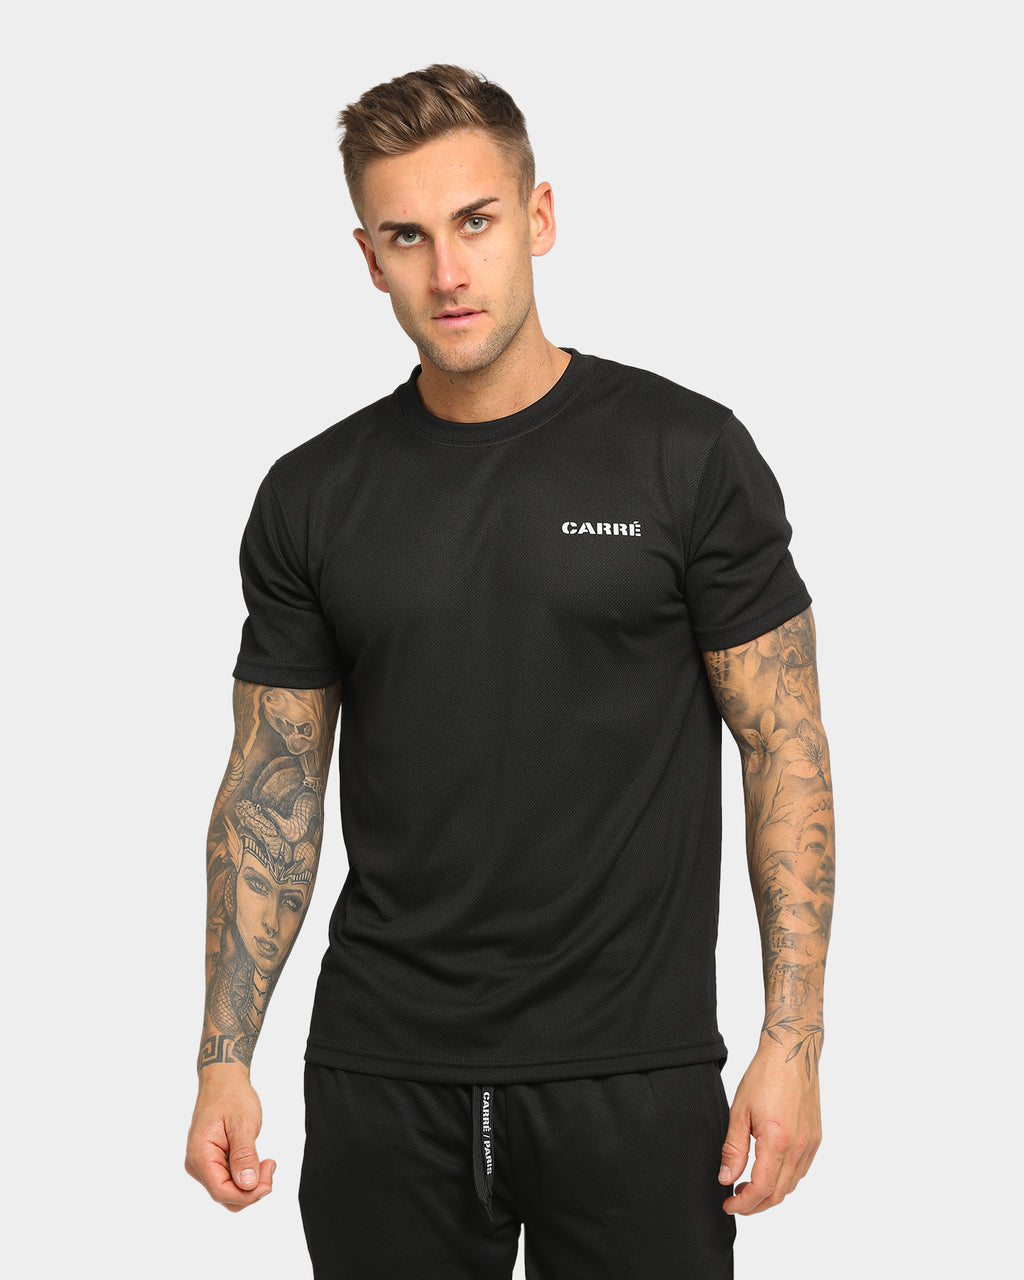 Carré Momentum Active Short Sleeve T-Shirt Black/Reflective